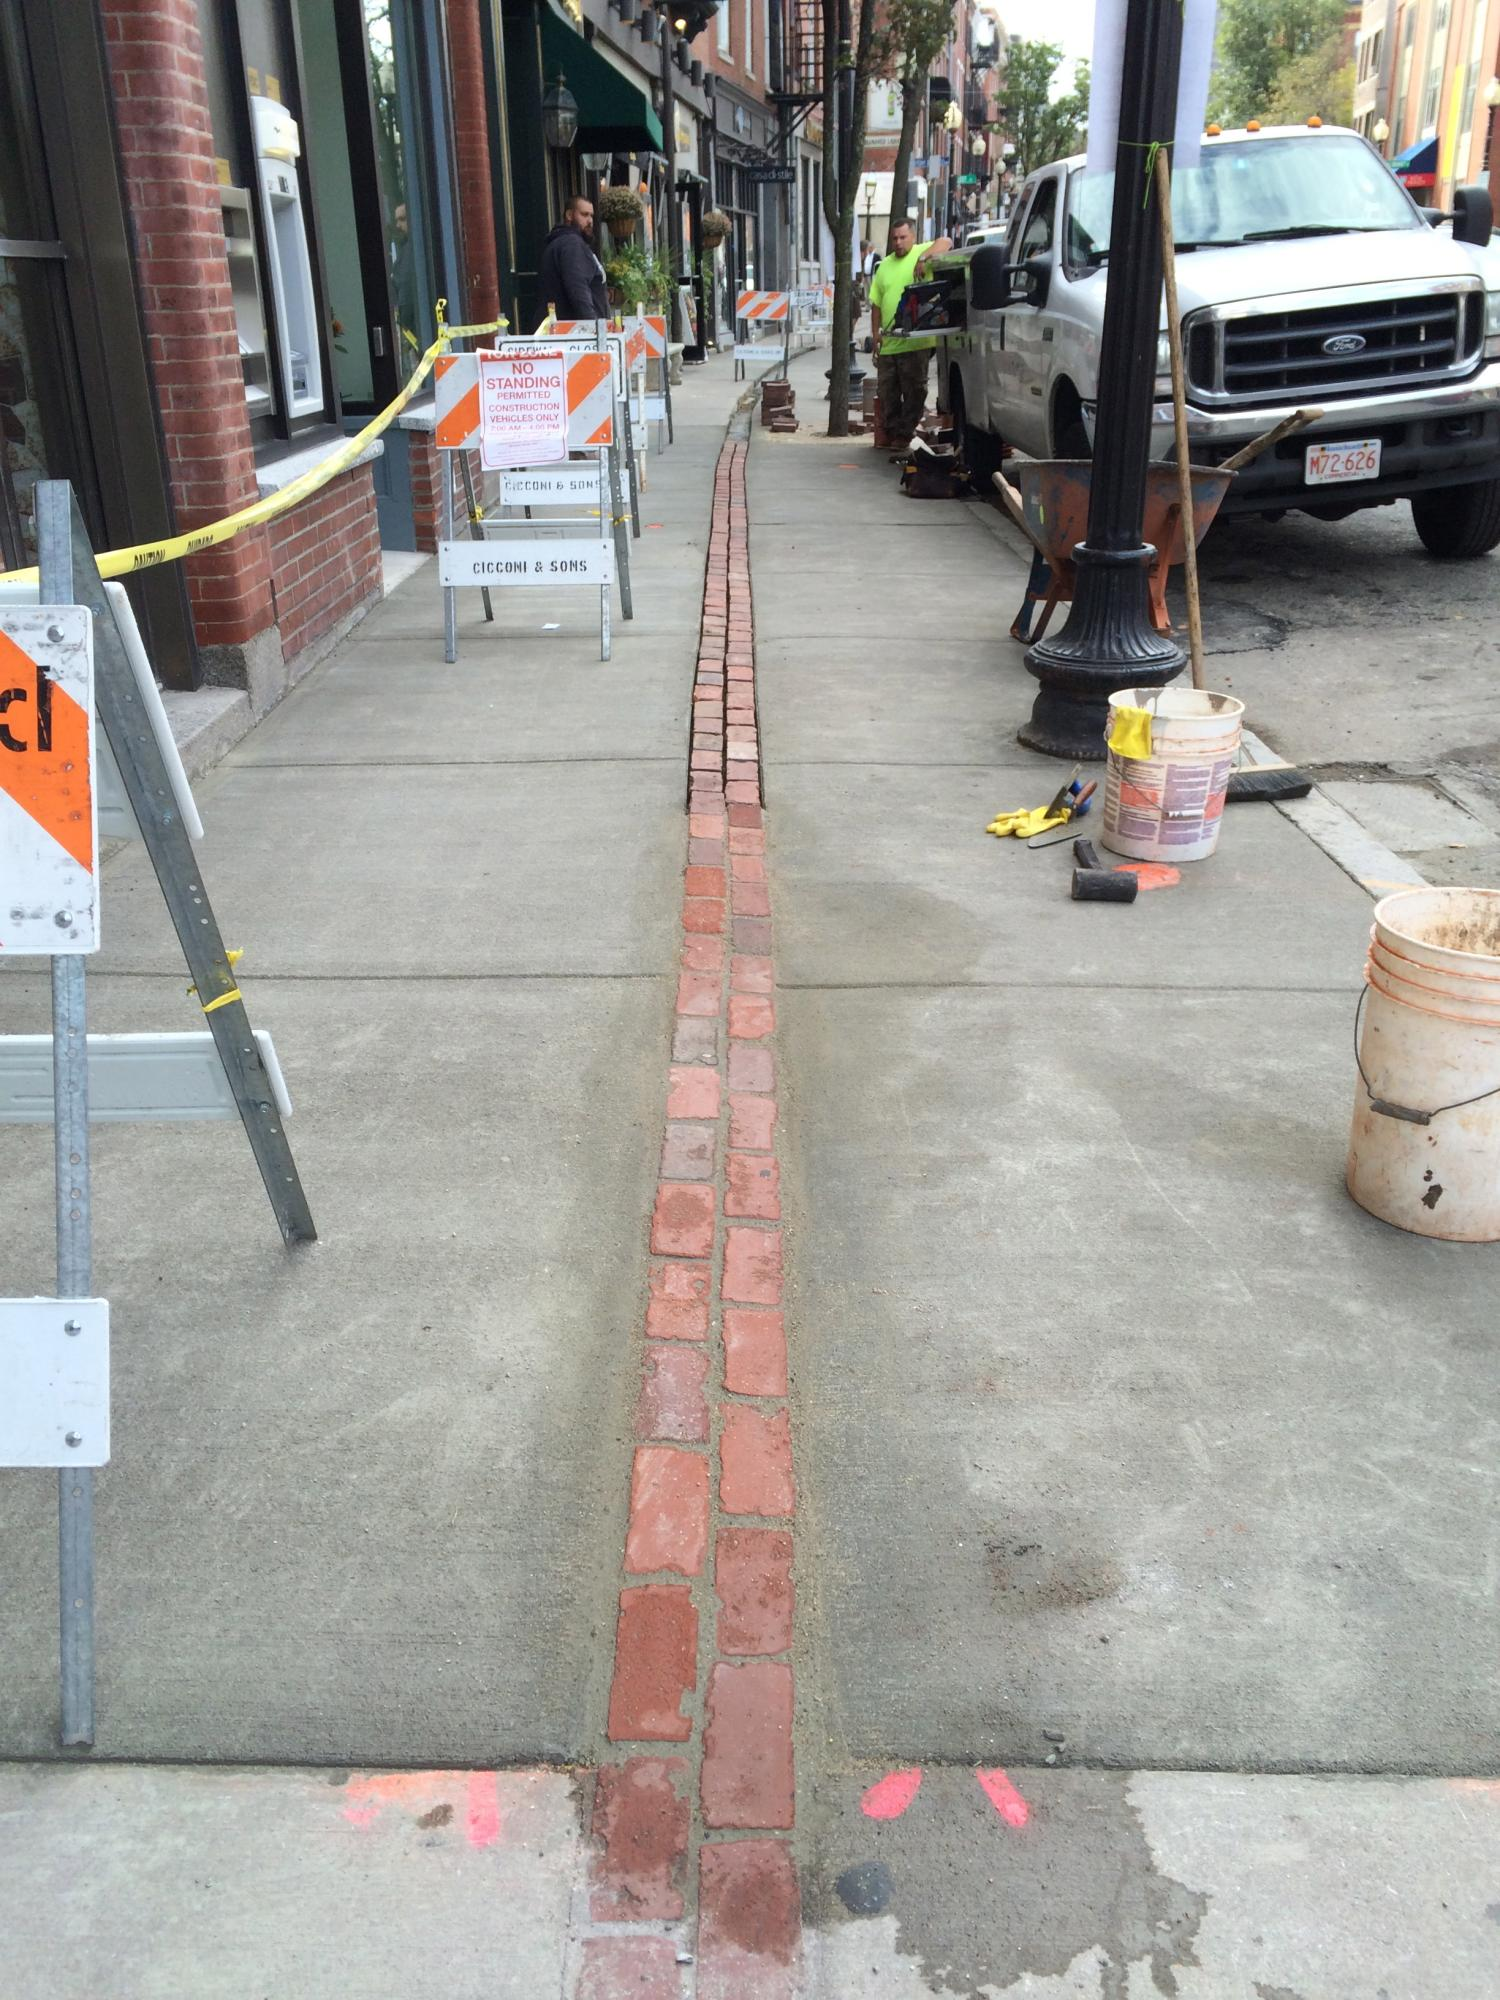 Freedom Trail work on Hanover St.